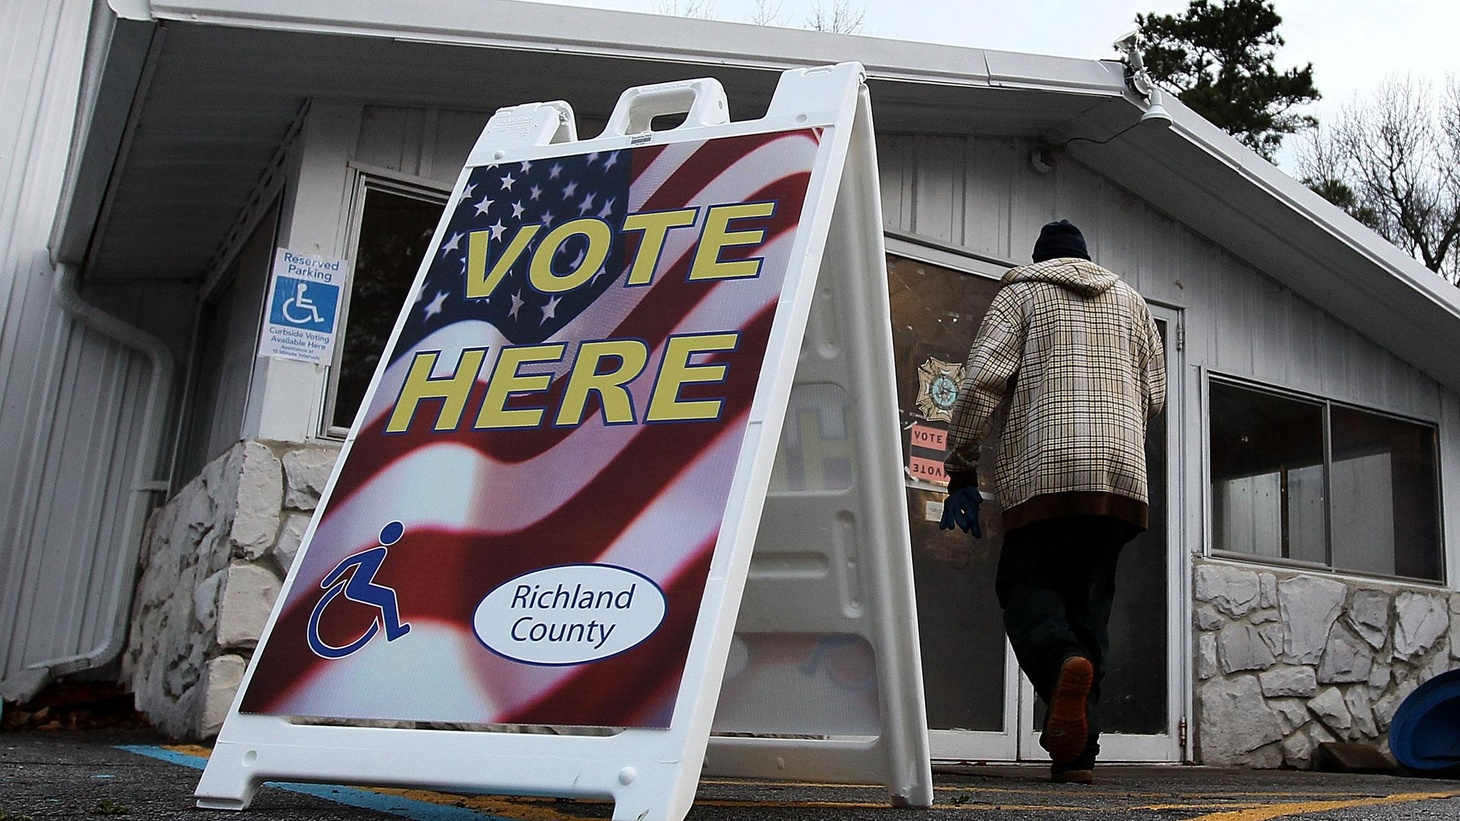 NPR coverage of the South Carolina primary begins when the polls close on Saturday, January 21, at 5pm PST.